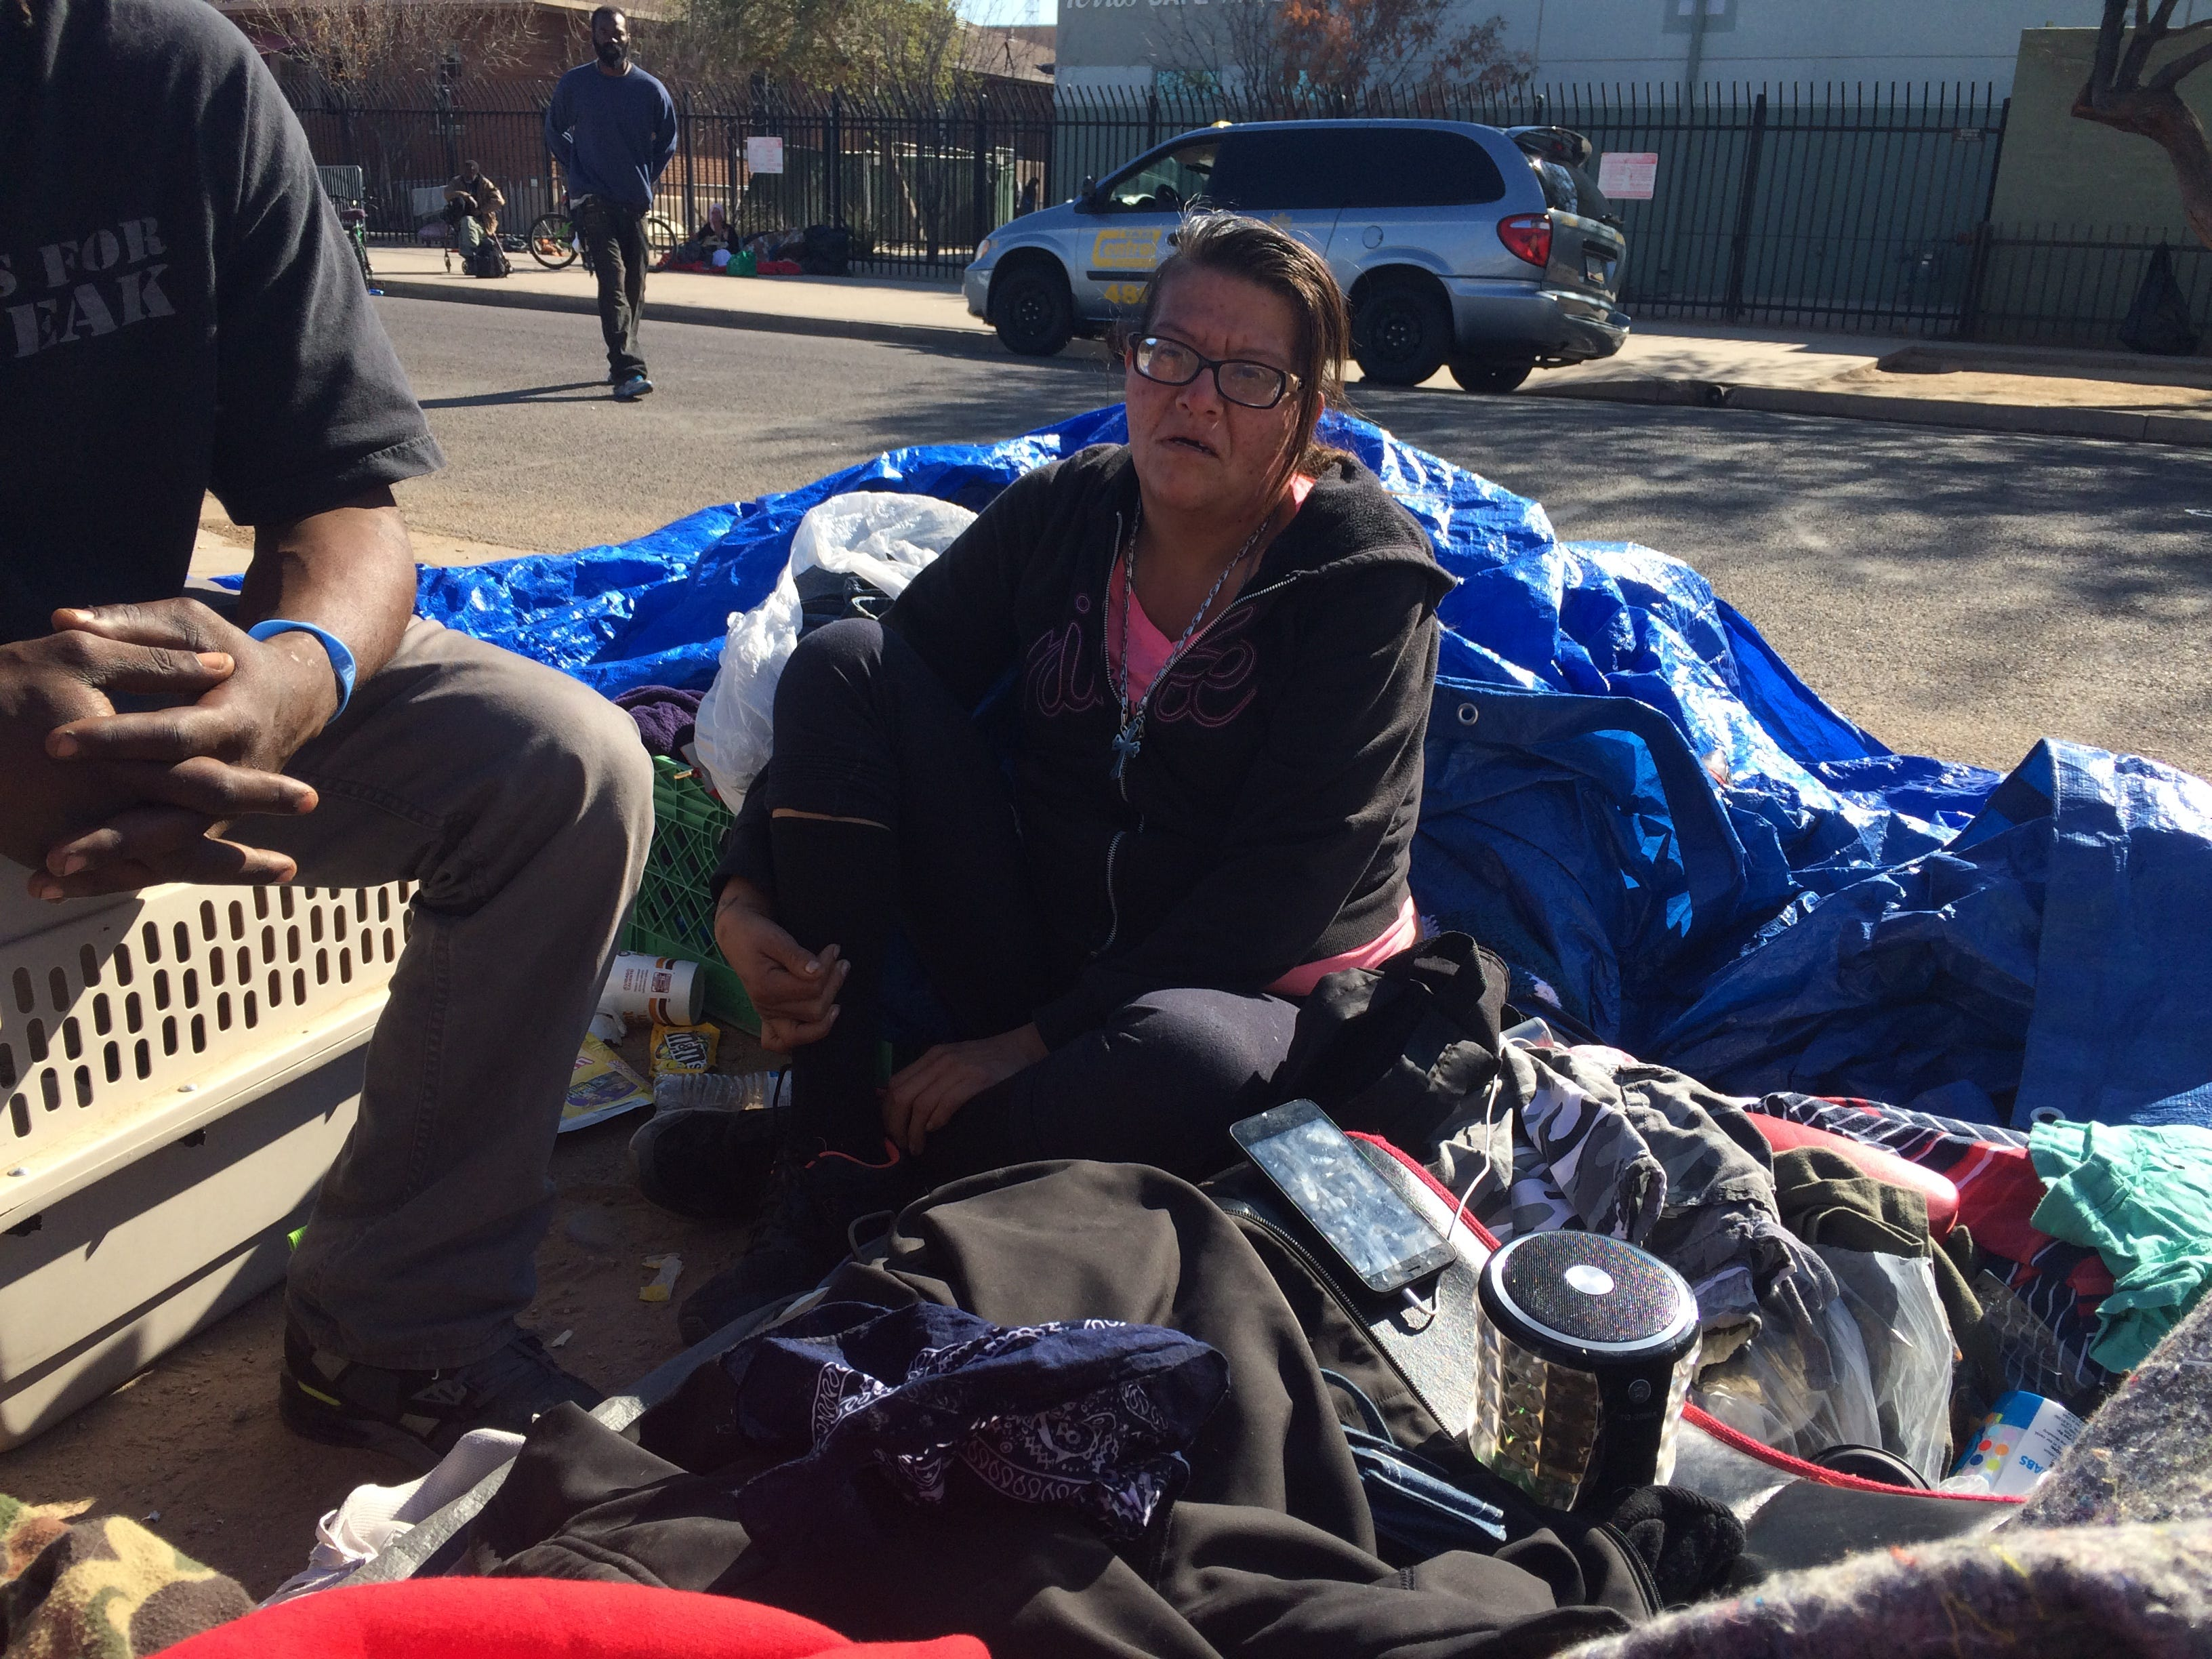 & Roberts: Homeless camp in tents while shelter must sit half empty